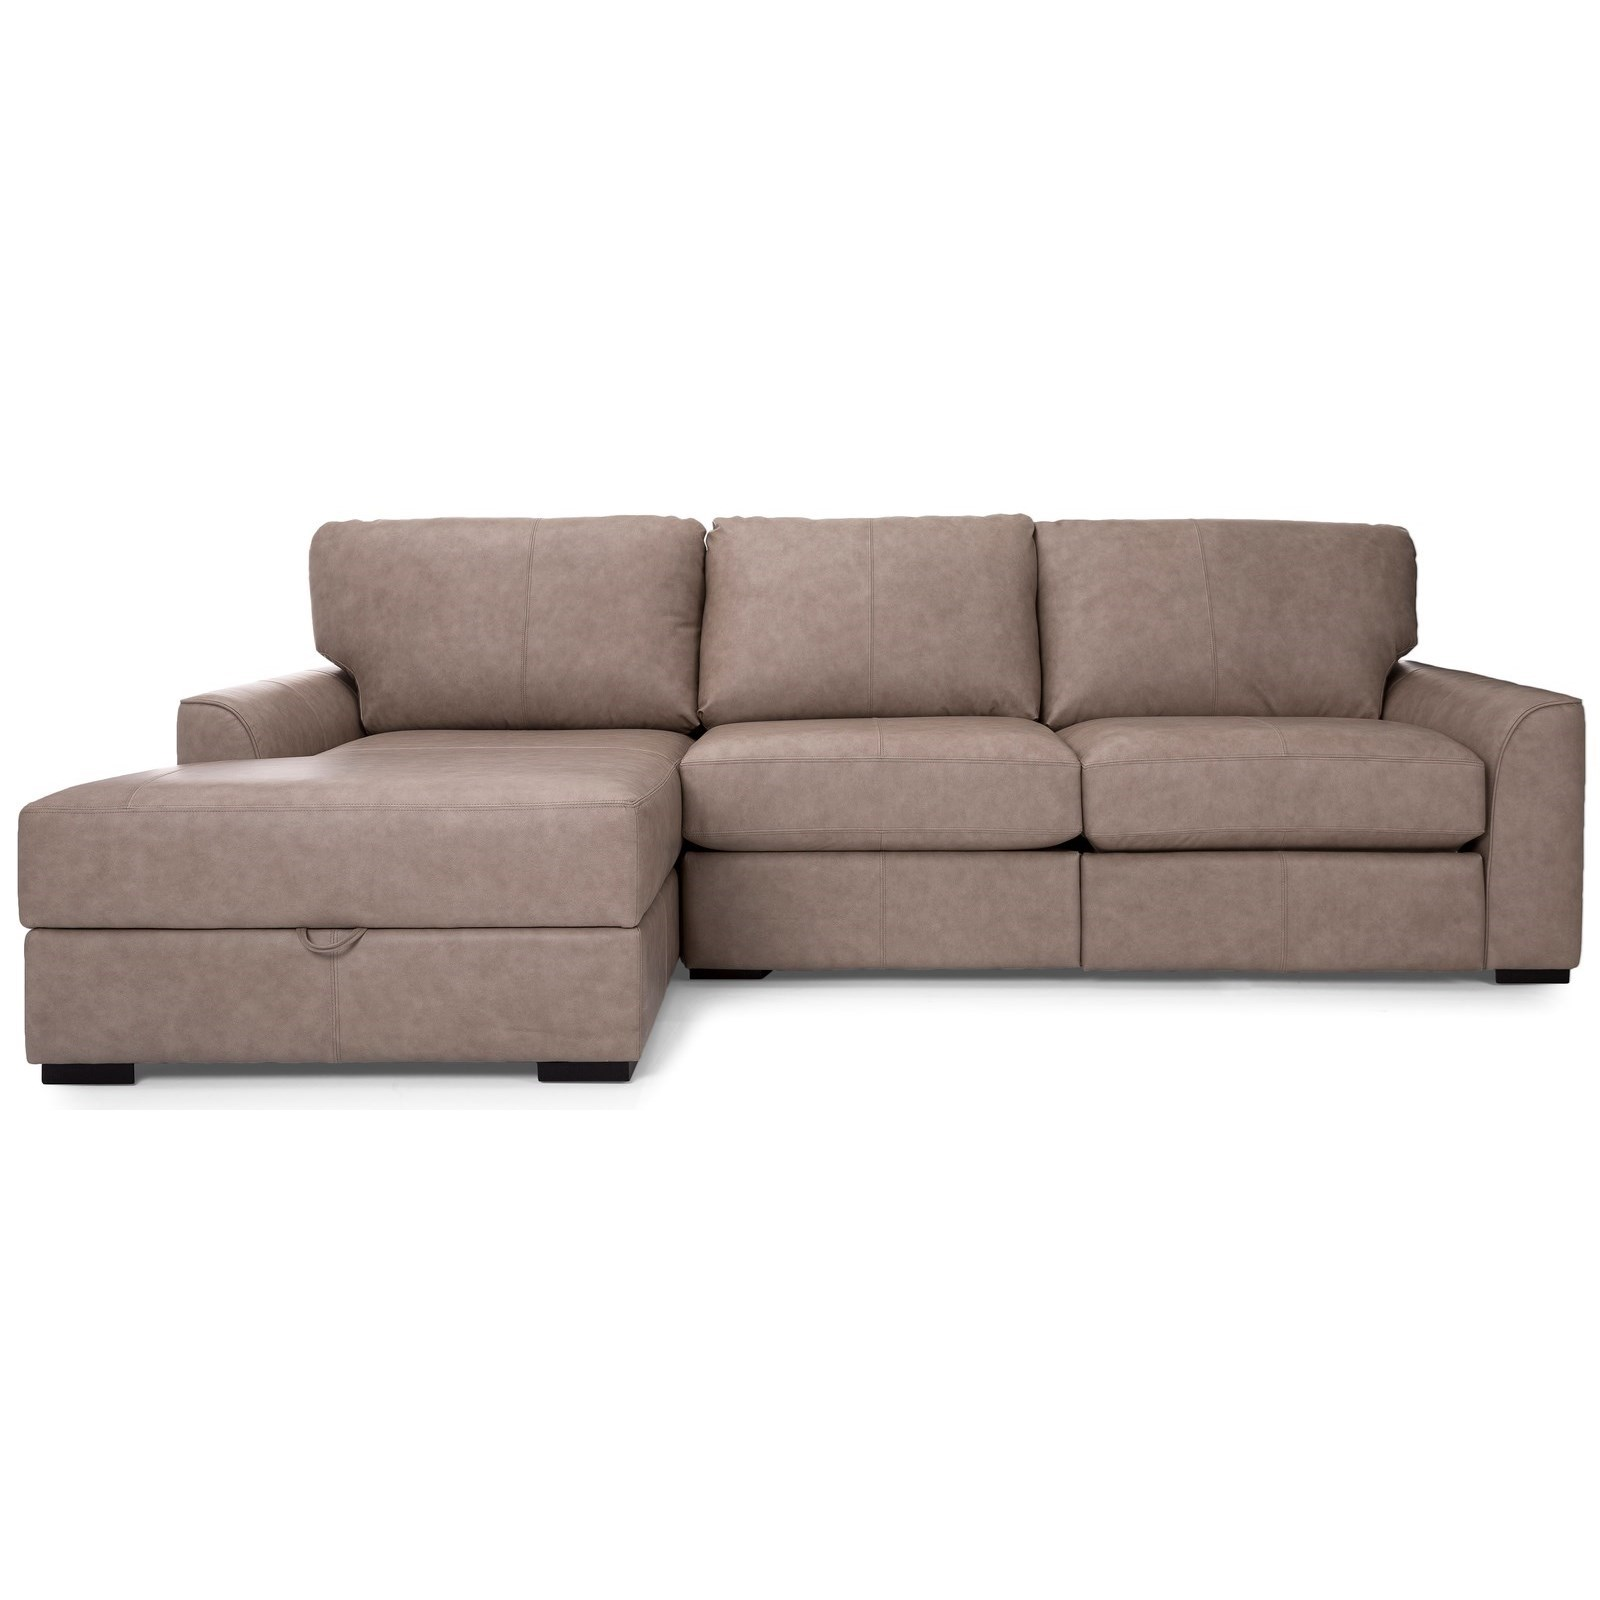 2786 Reclining Sofa Sectional with Chaise by Decor-Rest at Rooms for Less